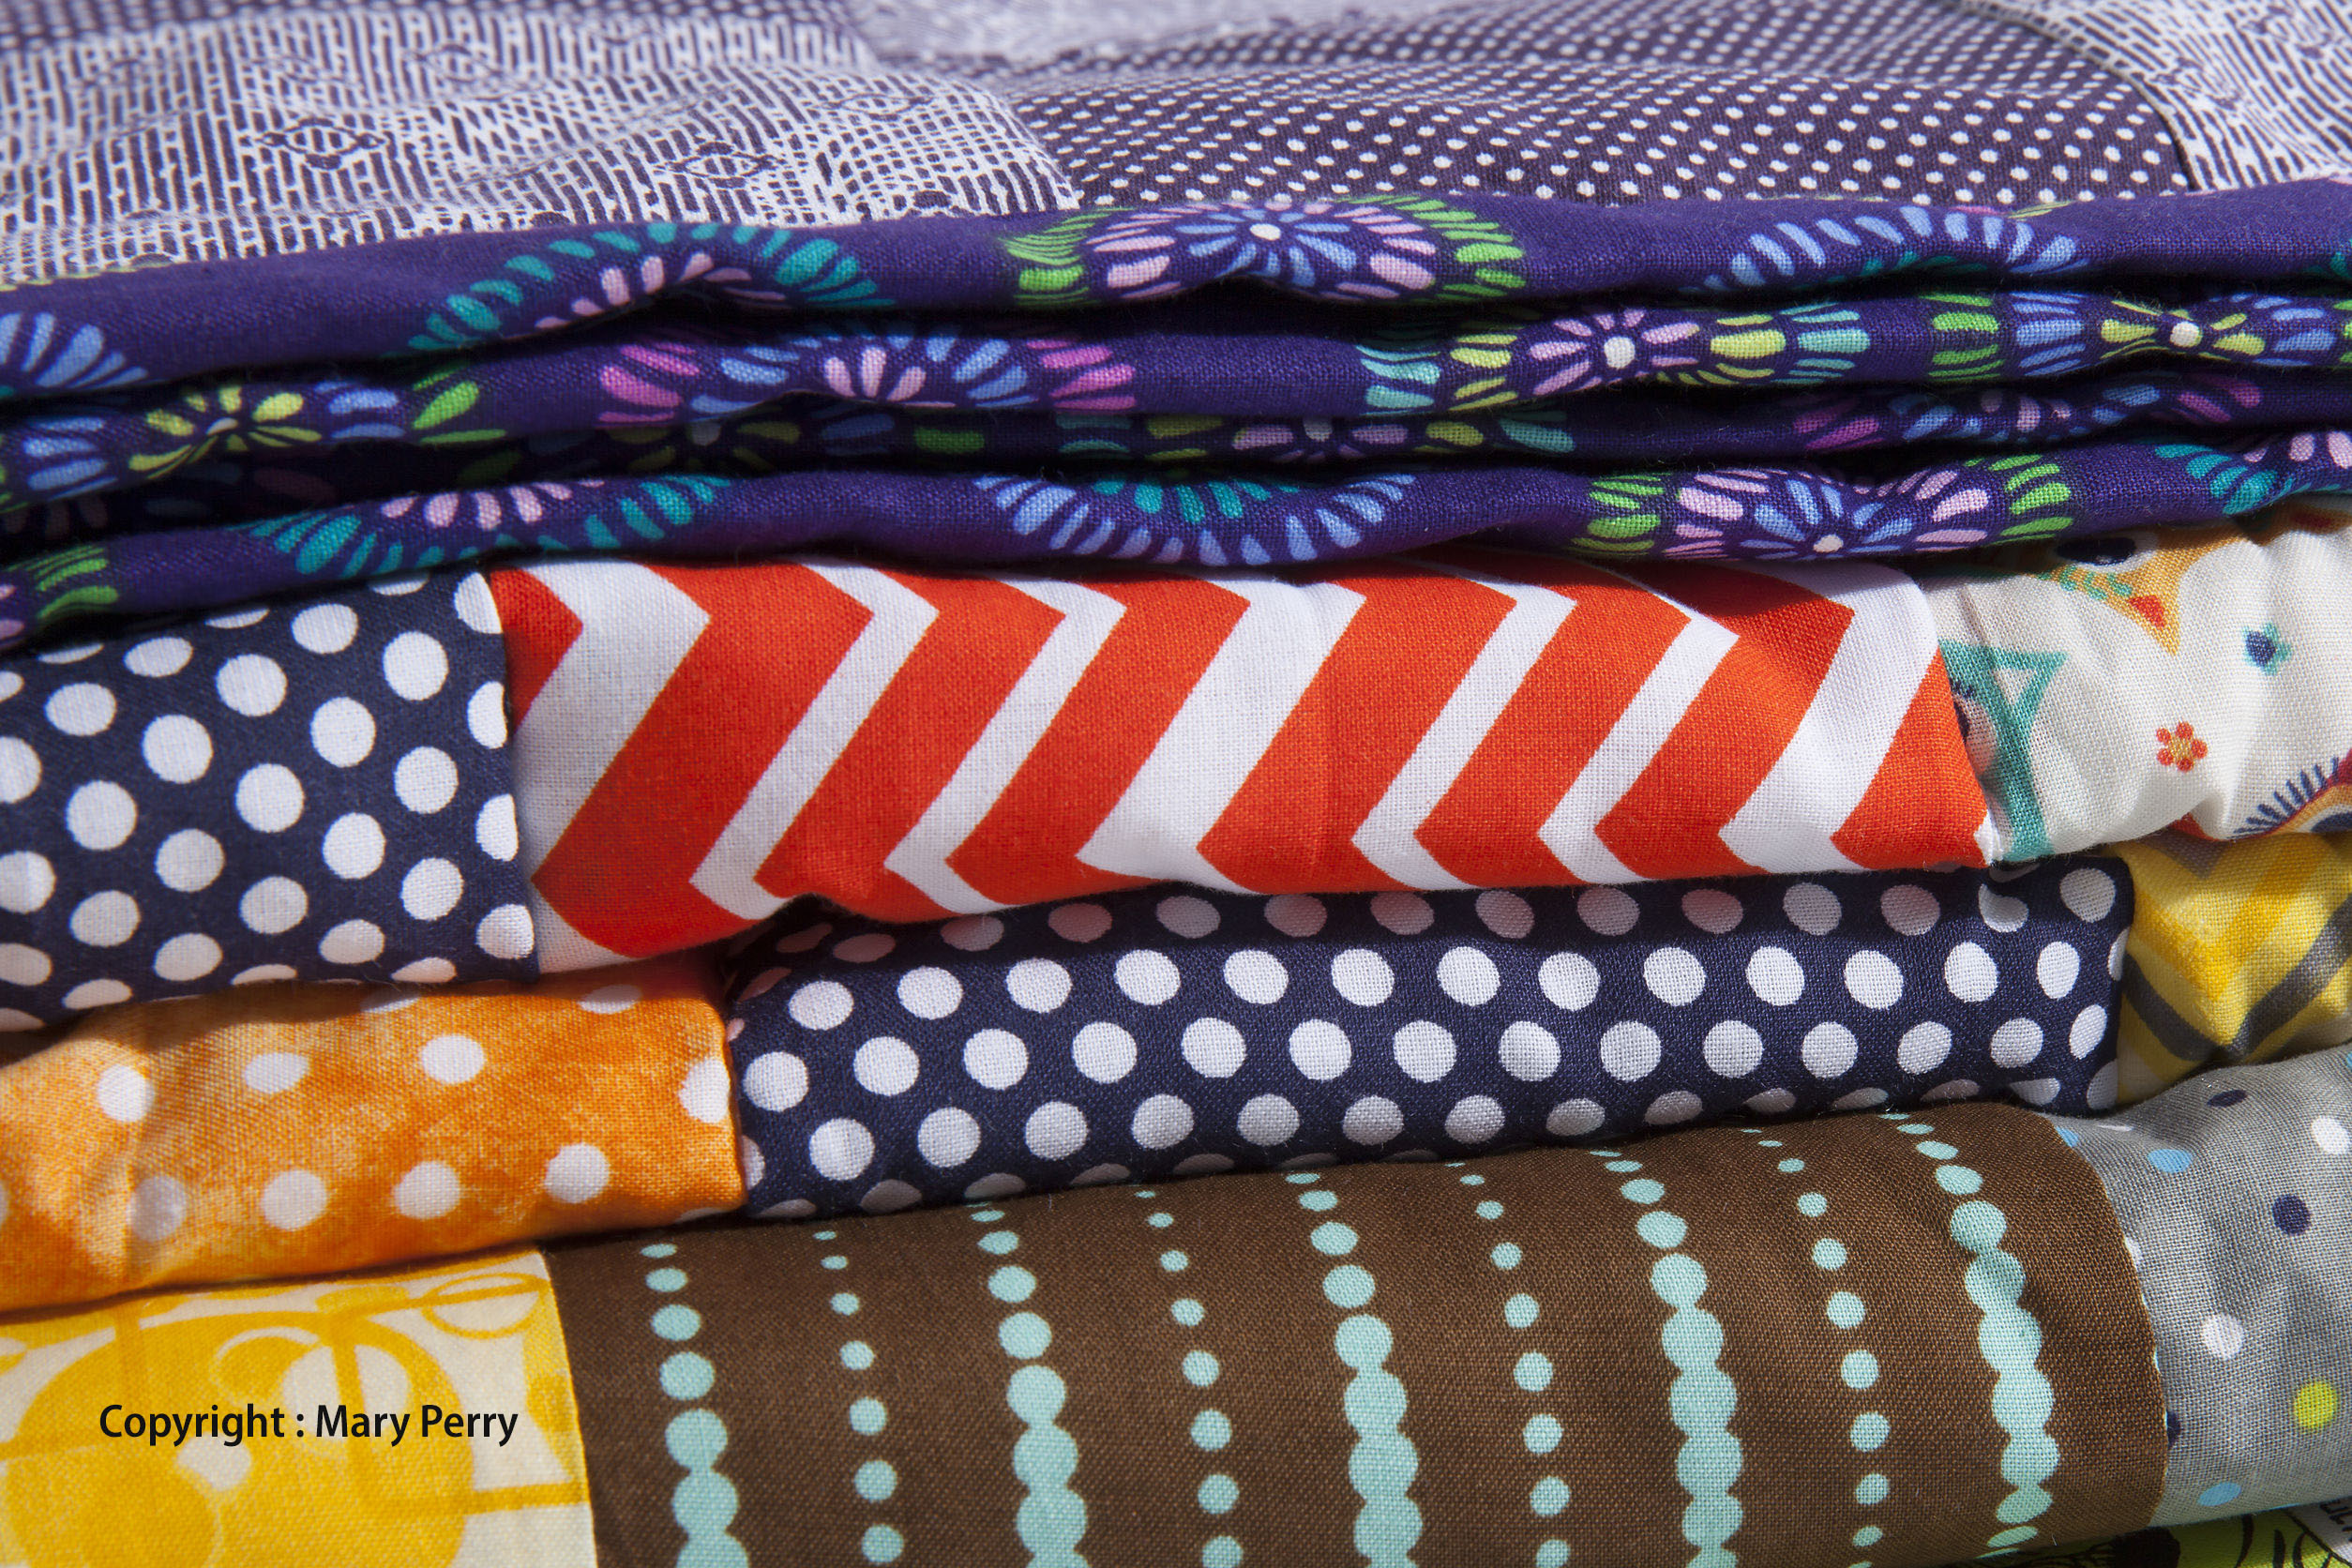 39550917 - a close up of stacked quilts showing different patterns and cloth texture.